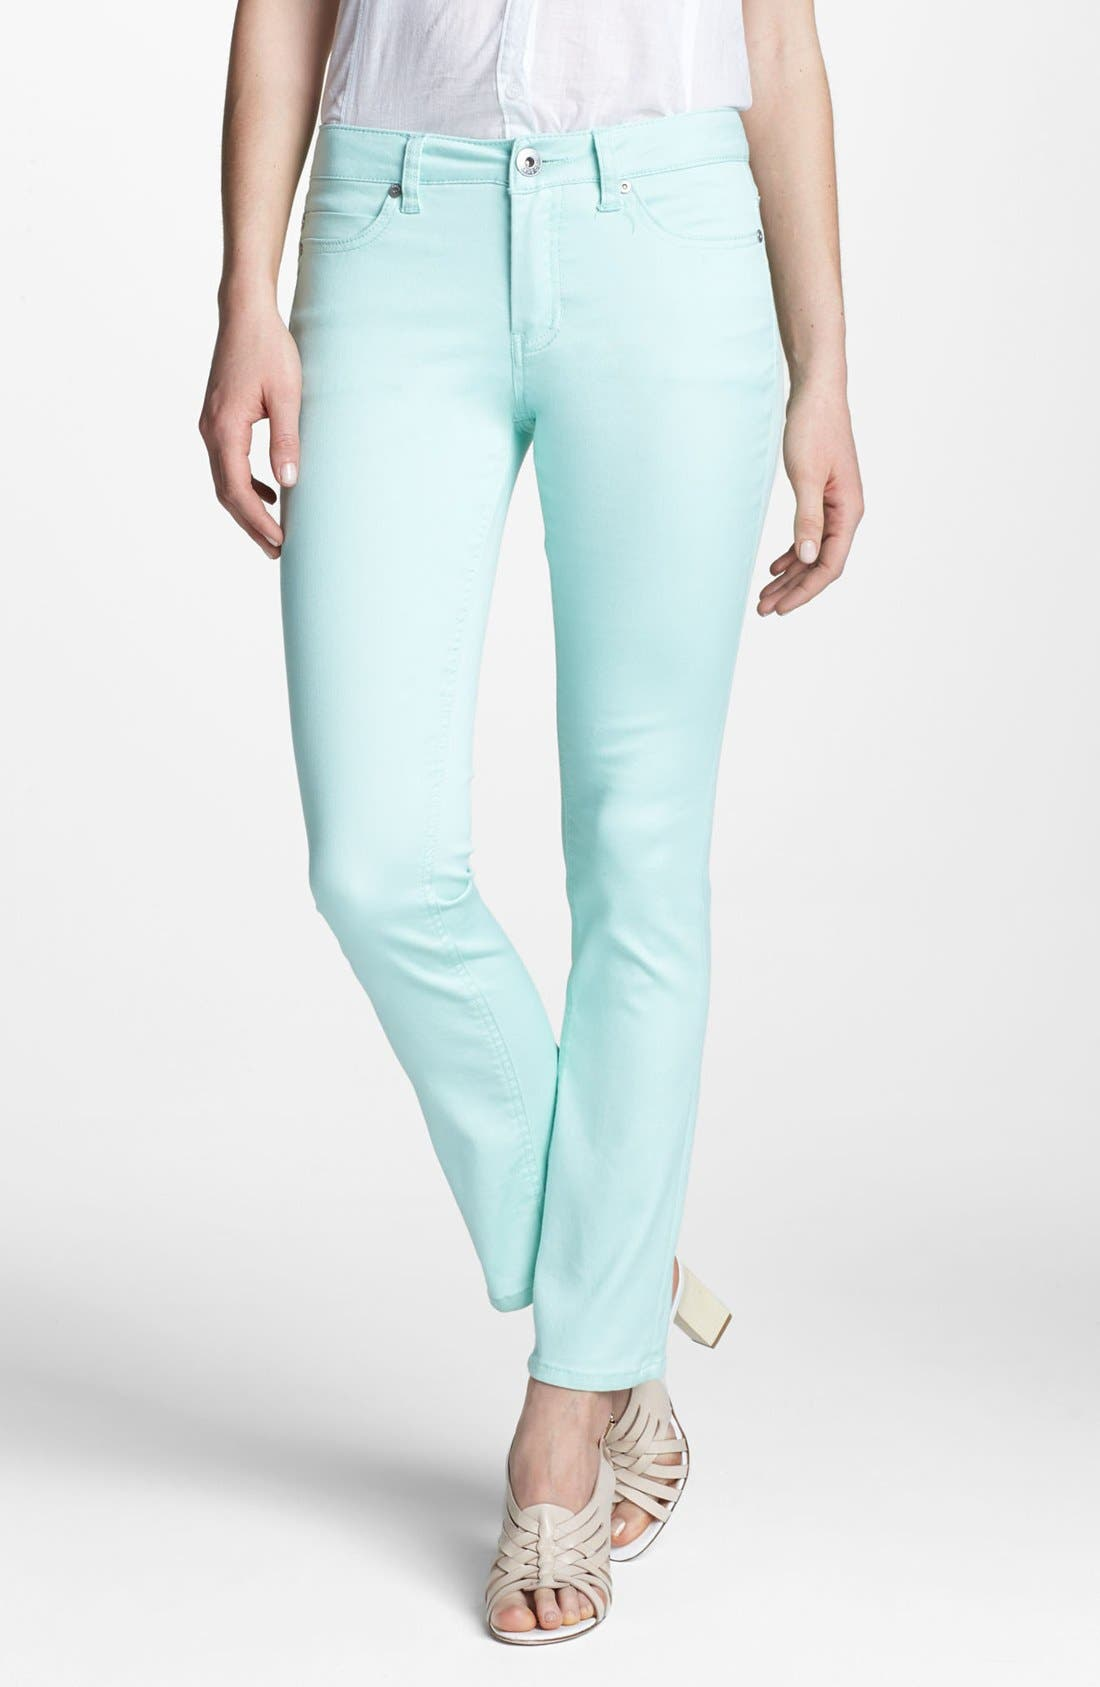 Alternate Image 1 Selected - Liverpool Jeans Company 'Sadie' Colored Straight Leg Stretch Jeans (Petite) (Online Only)